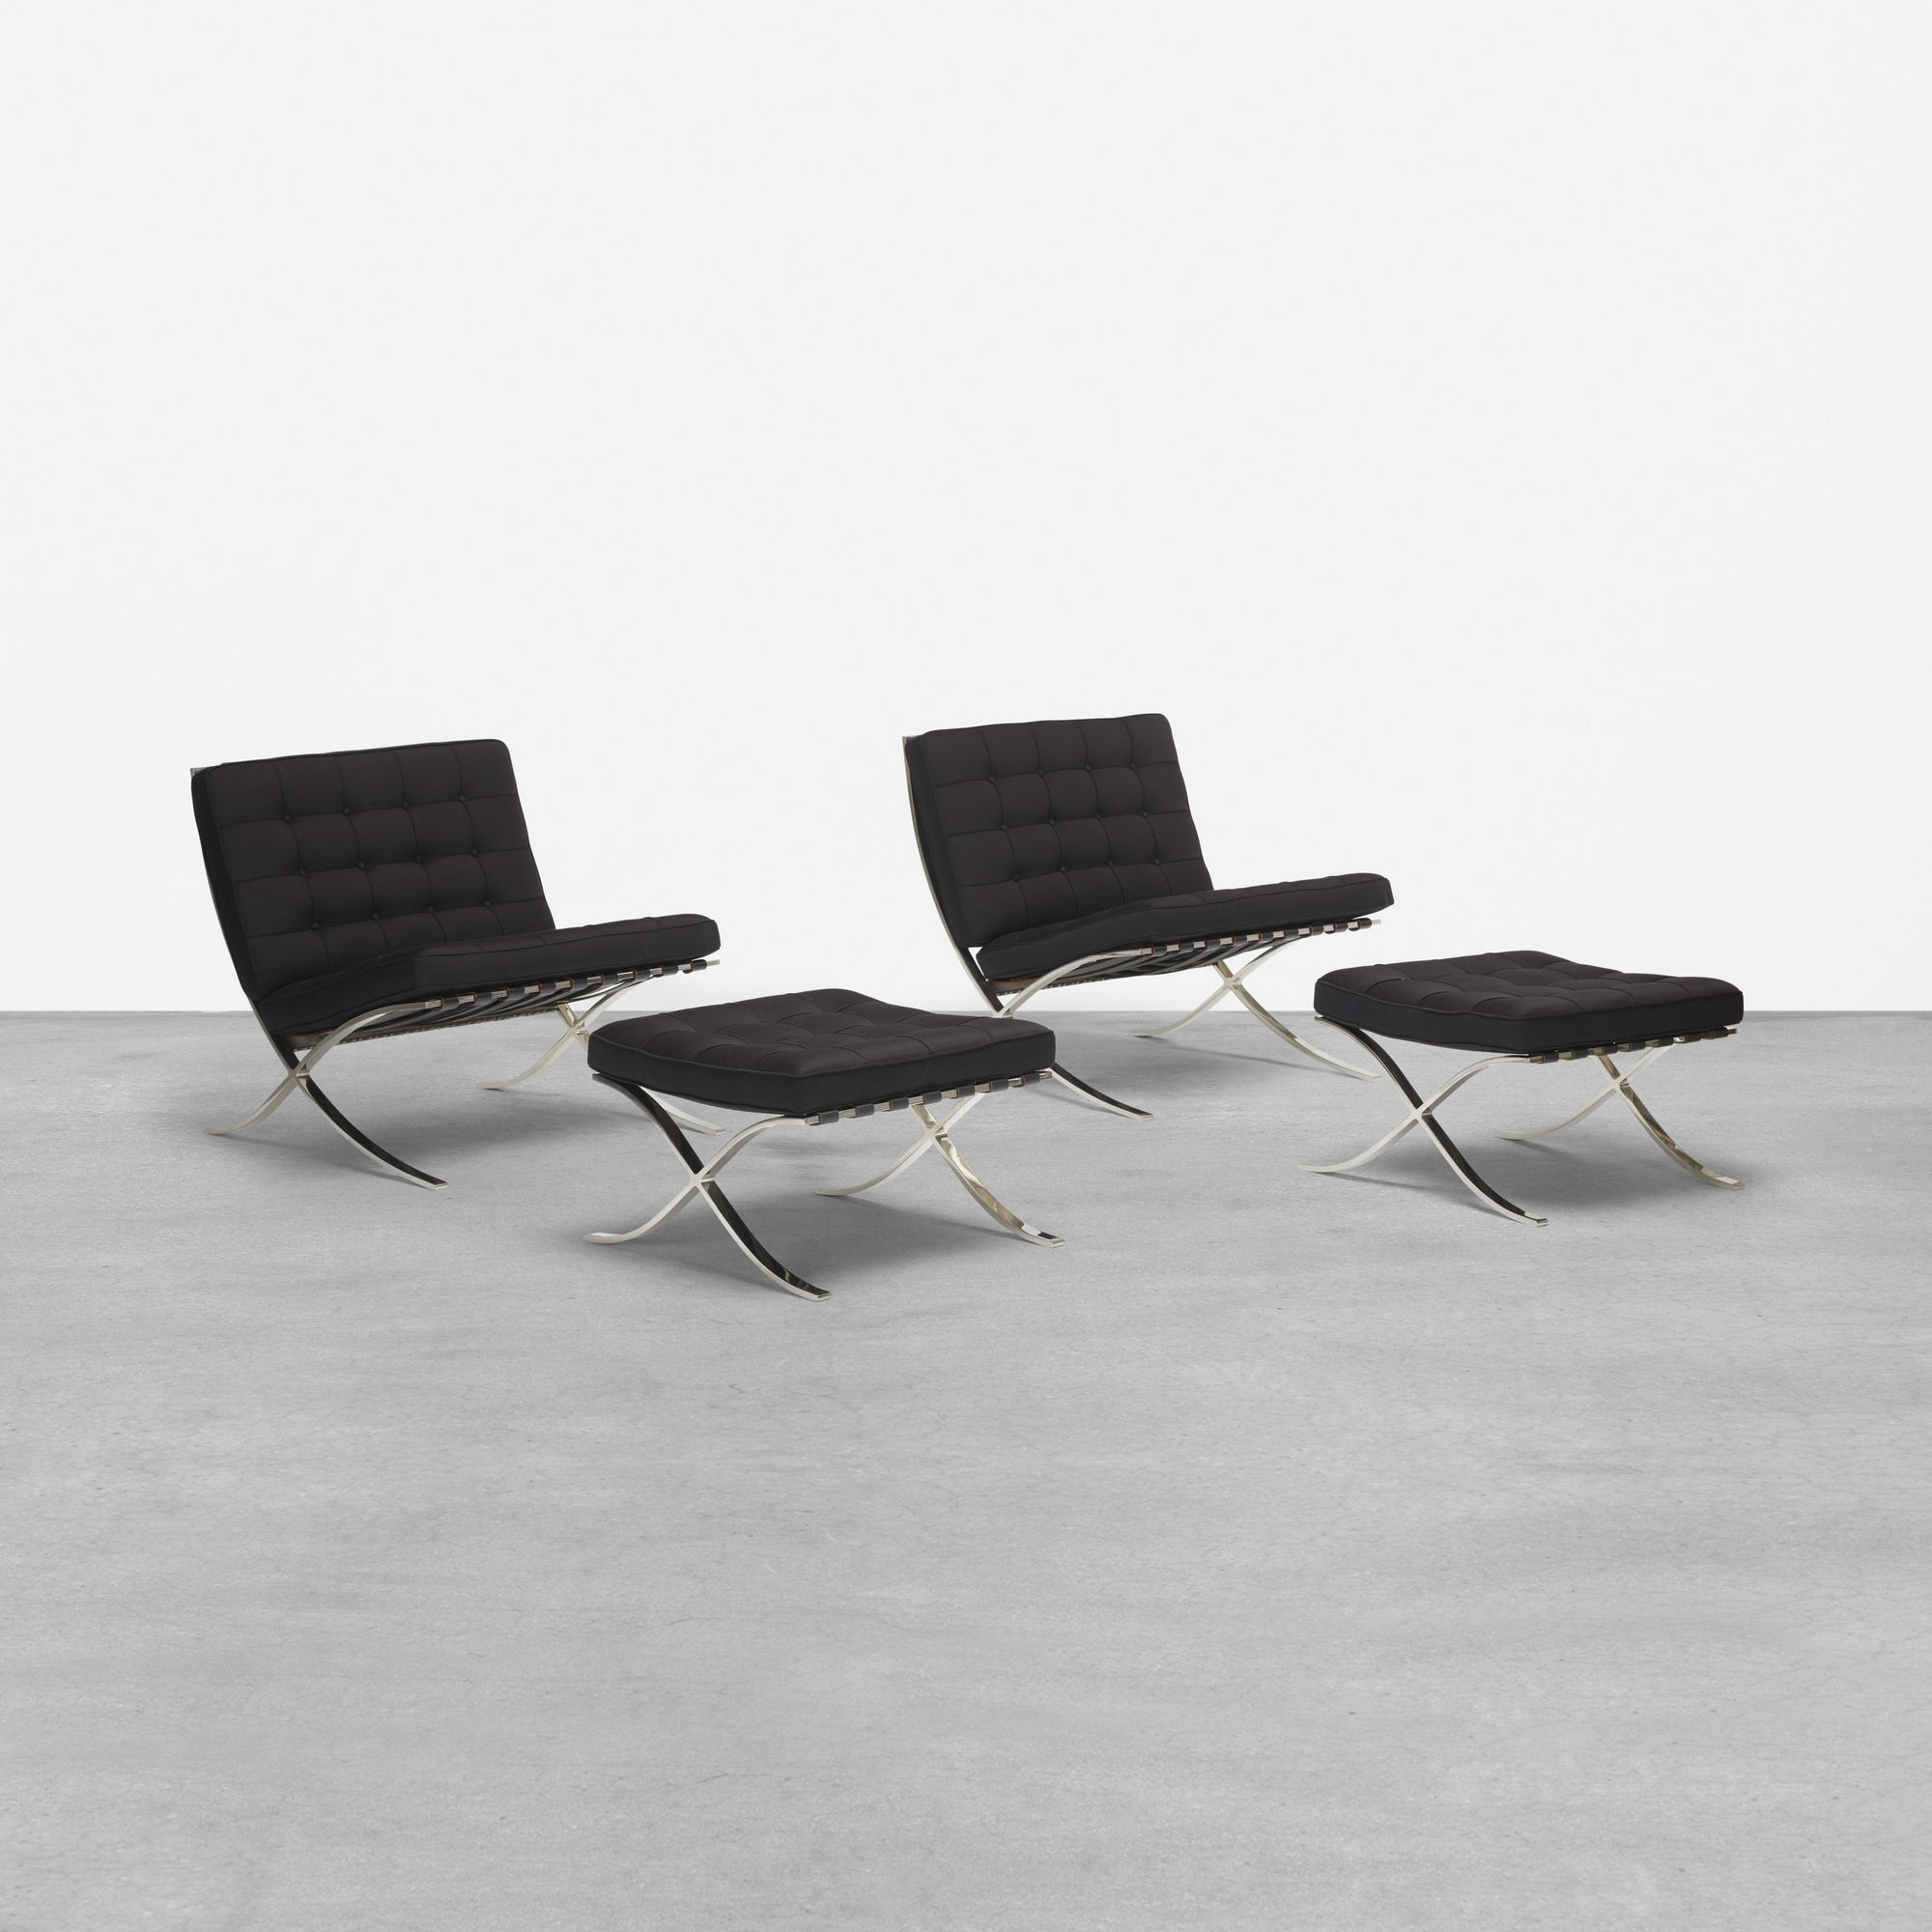 150: Ludwig Mies van der Rohe / pair of Barcelona chairs and ottomans (1 of 3)